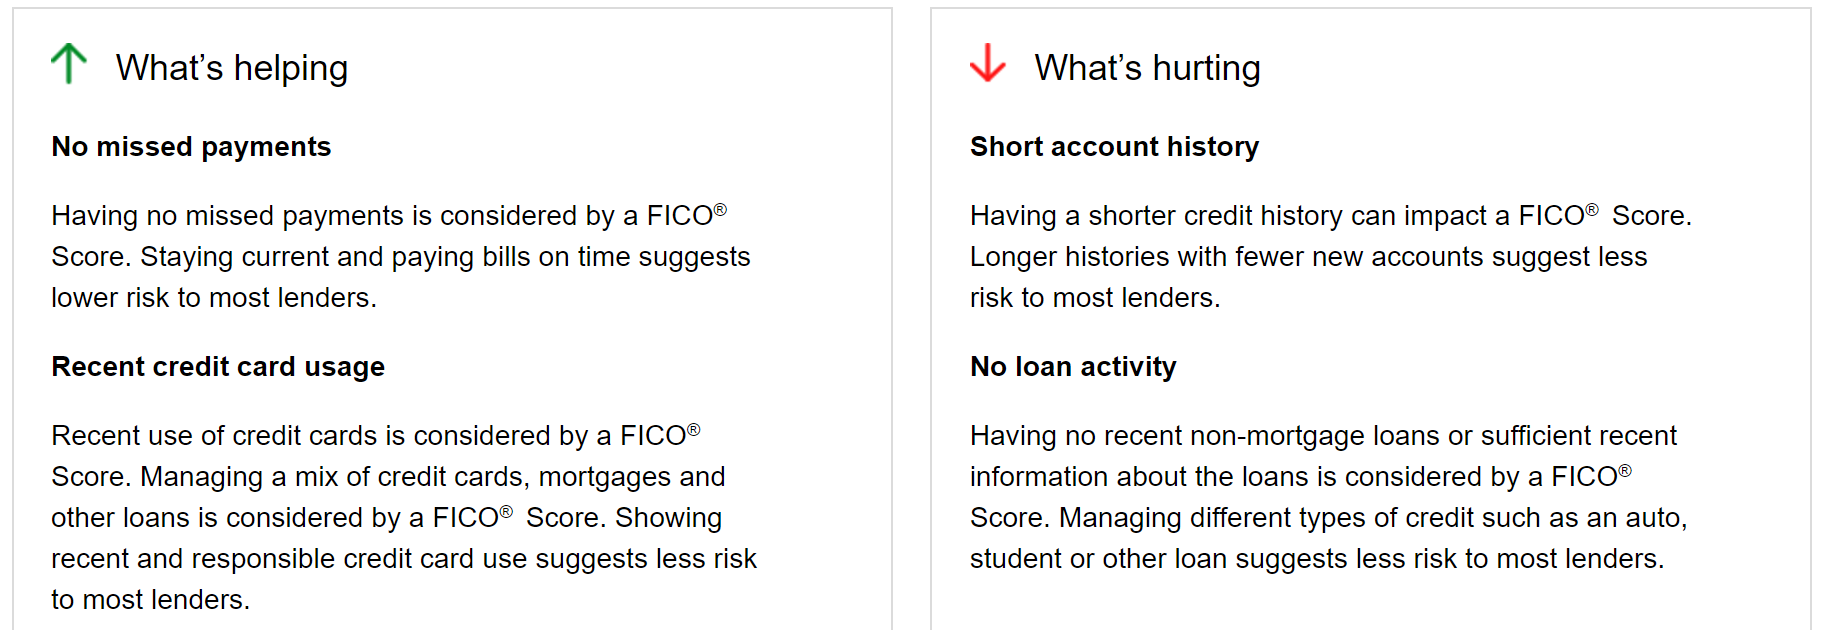 Adding An Installment Loan  The Share Secure Tec  Myfico� Forums   4506756